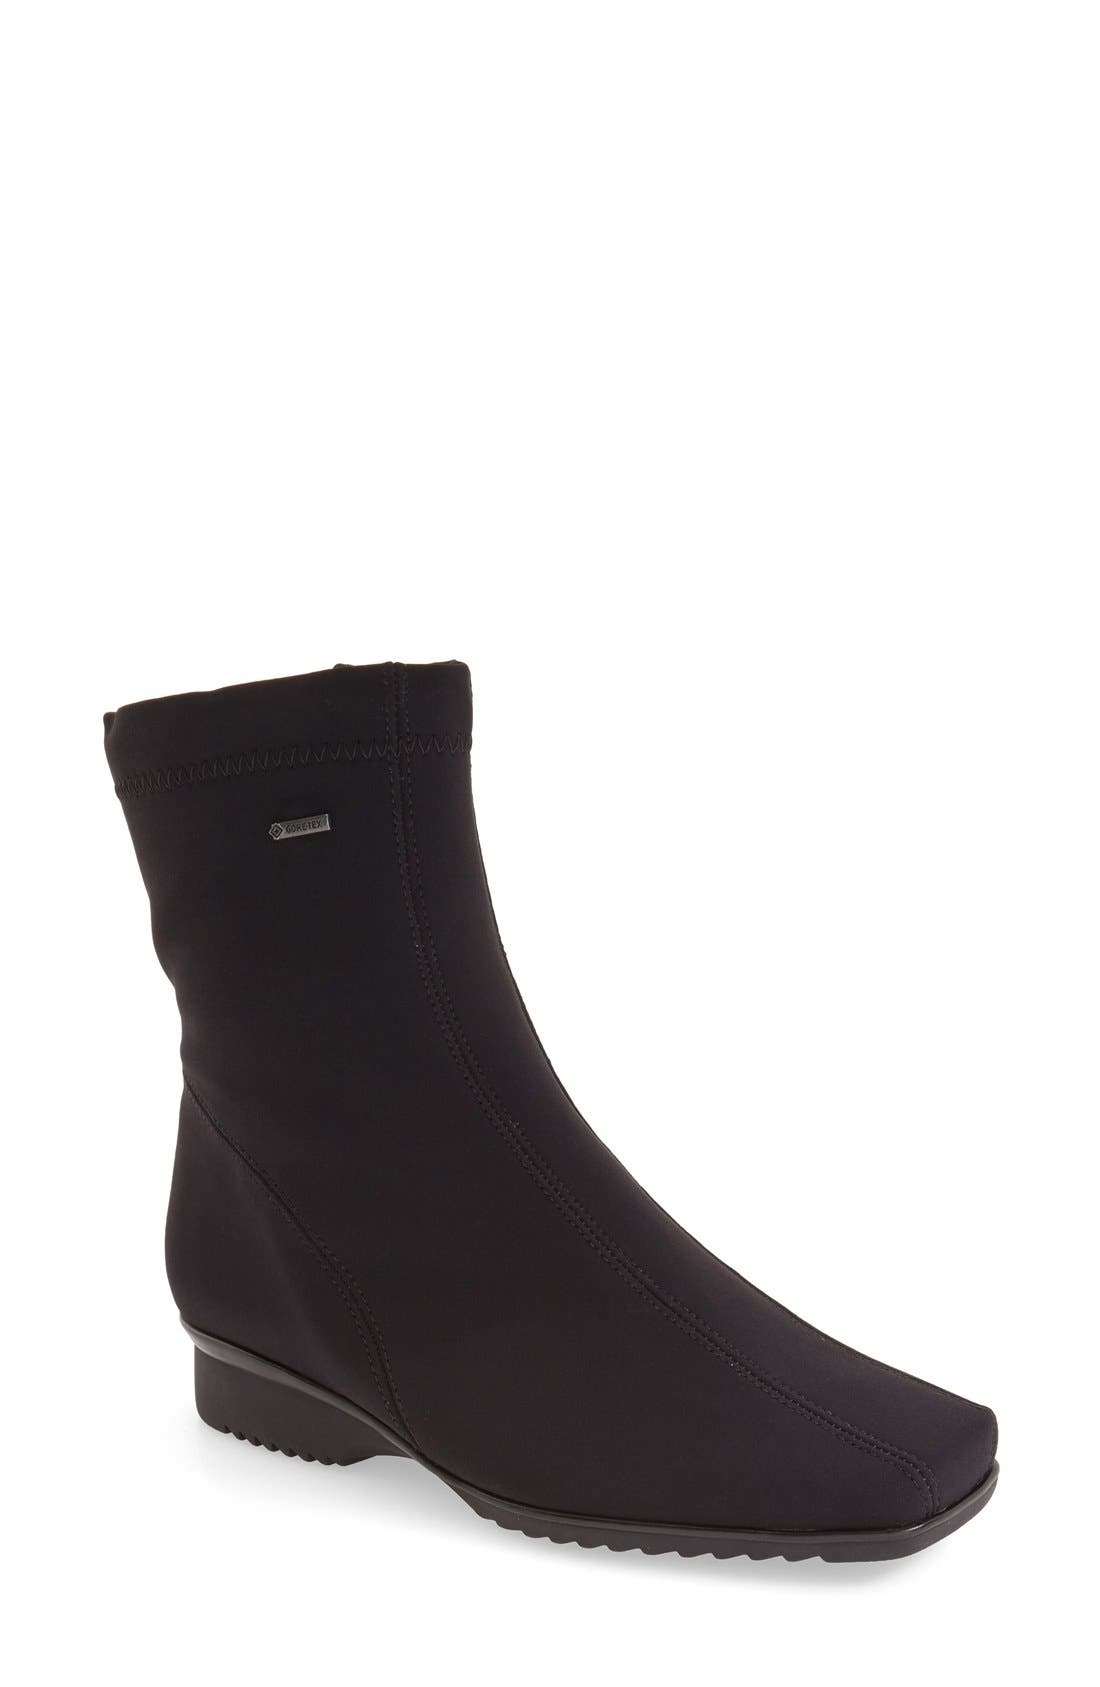 'Page' Waterproof Gore-Tex<sup>®</sup> Ankle Bootie,                             Main thumbnail 1, color,                             BLACK FABRIC